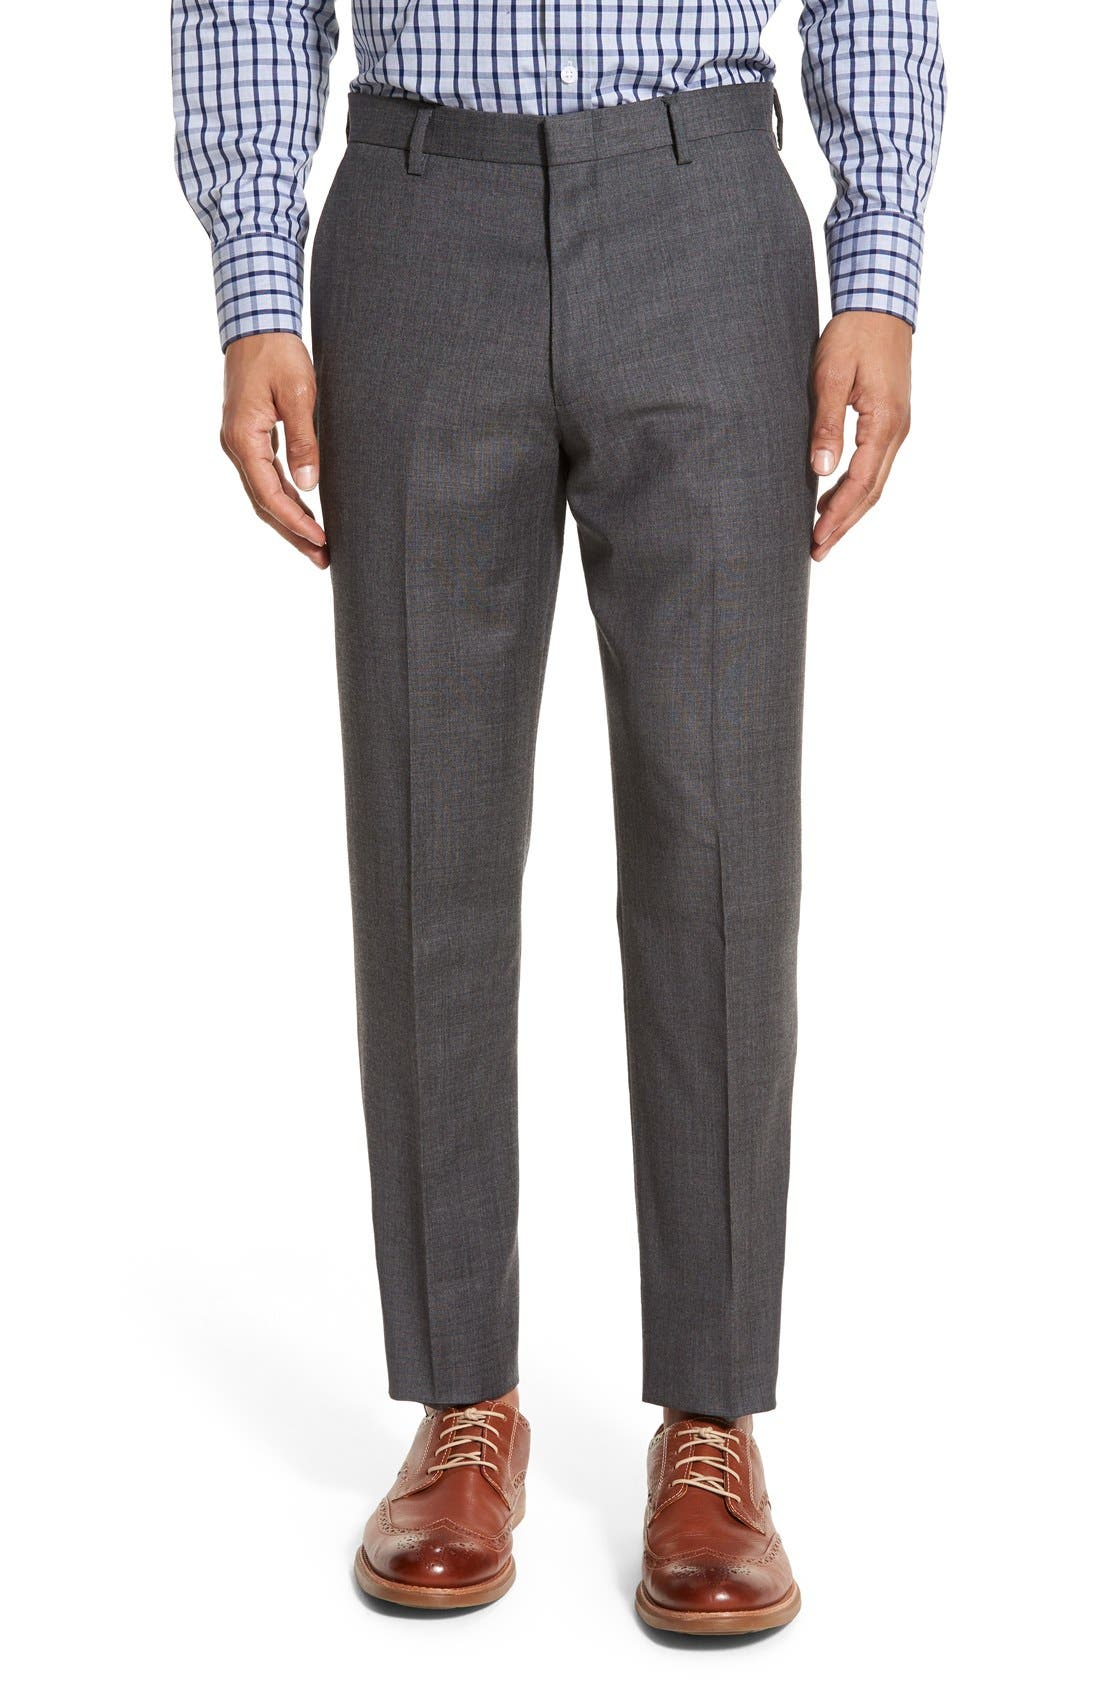 J. CREW J.Crew Ludlow Flat Front Solid Wool Trousers